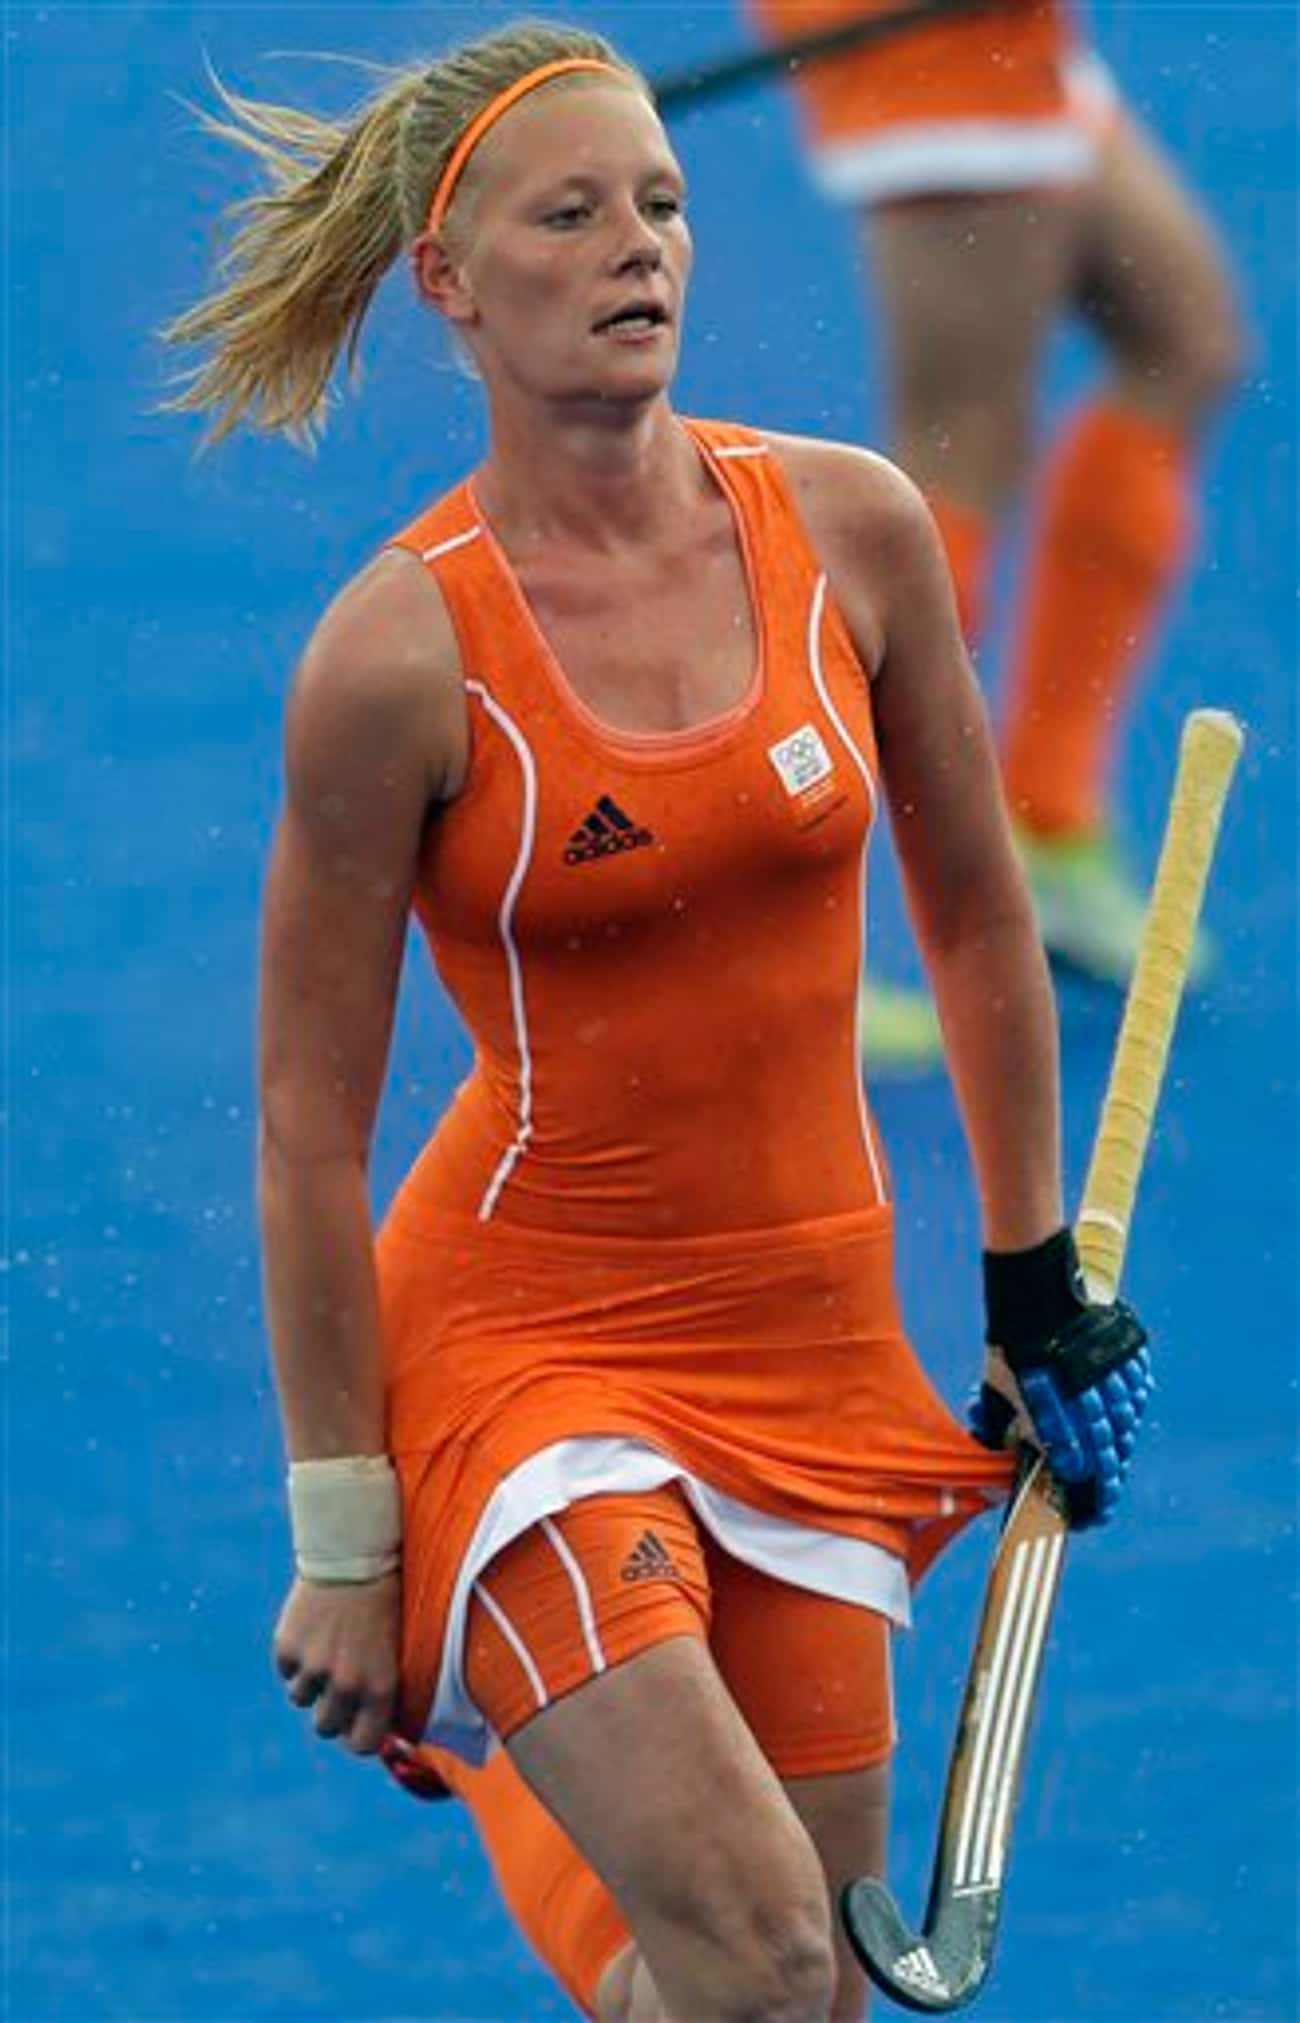 Caia van Maasakker is listed (or ranked) 3 on the list Famous Field Hockey Players from the Netherlands